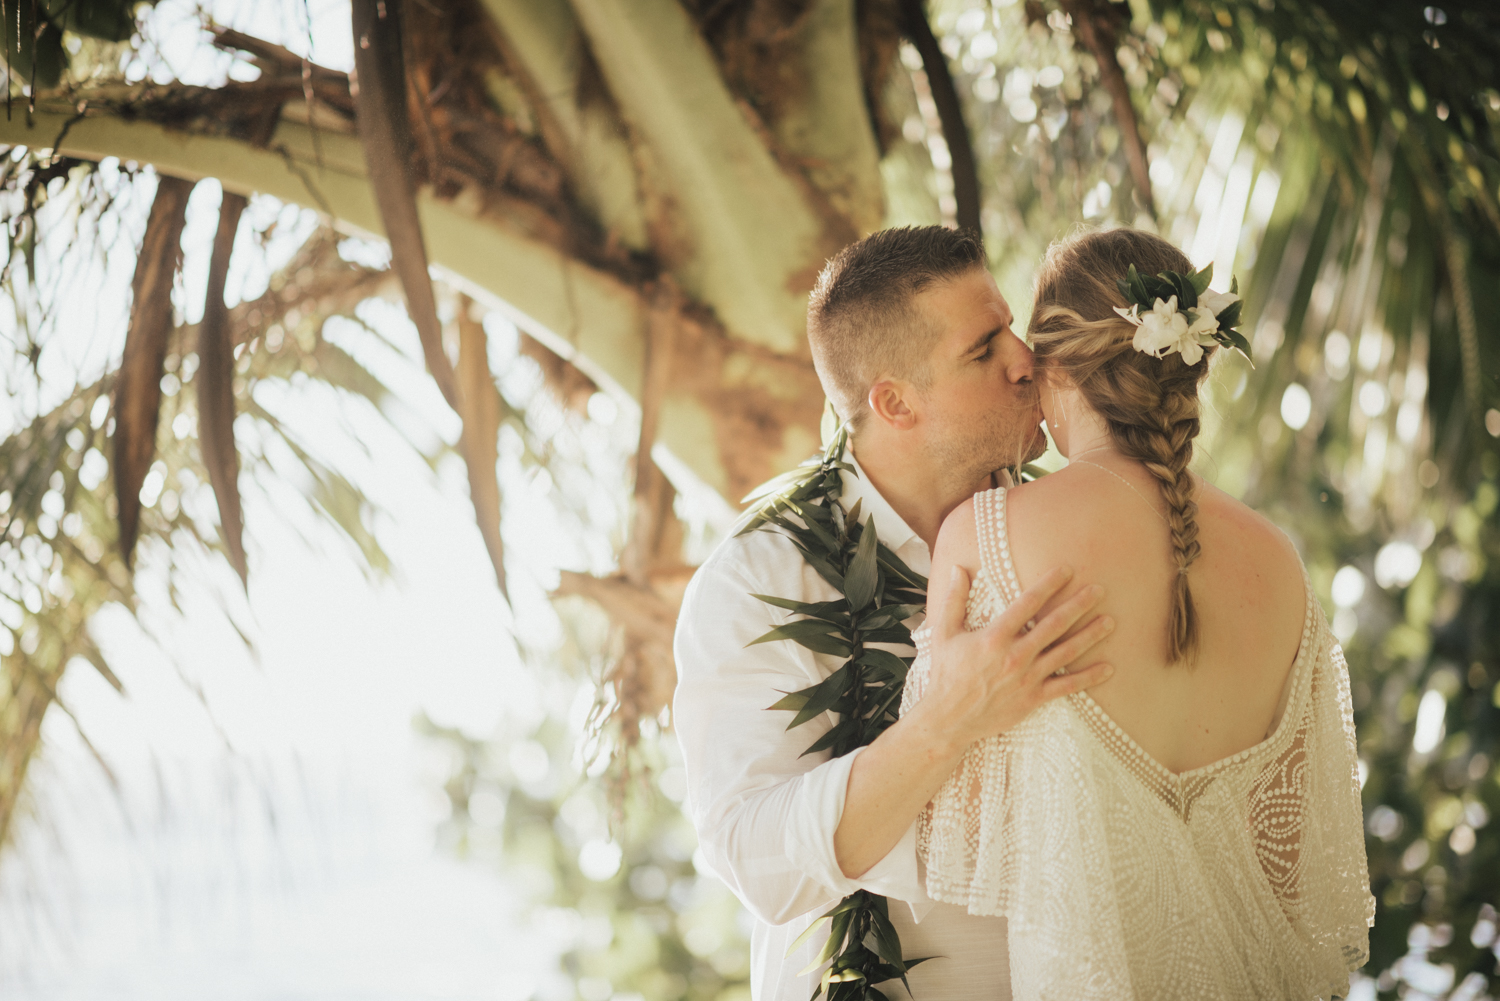 Kauai-elopement-photographer-77.jpg